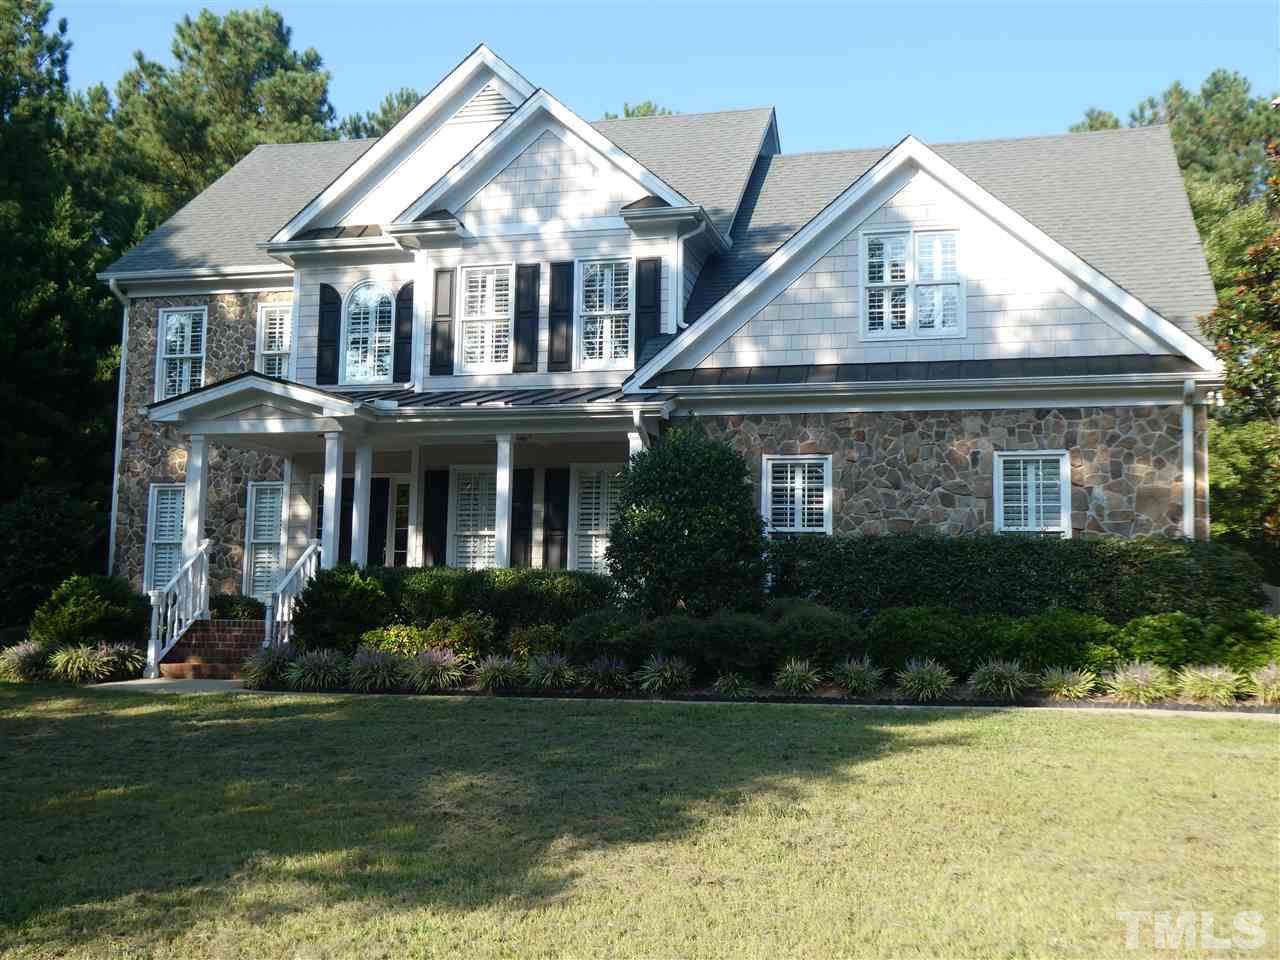 1001 Karbas Road, Wake Forest, NC 27587 (MLS #2262265) :: The Oceanaire Realty